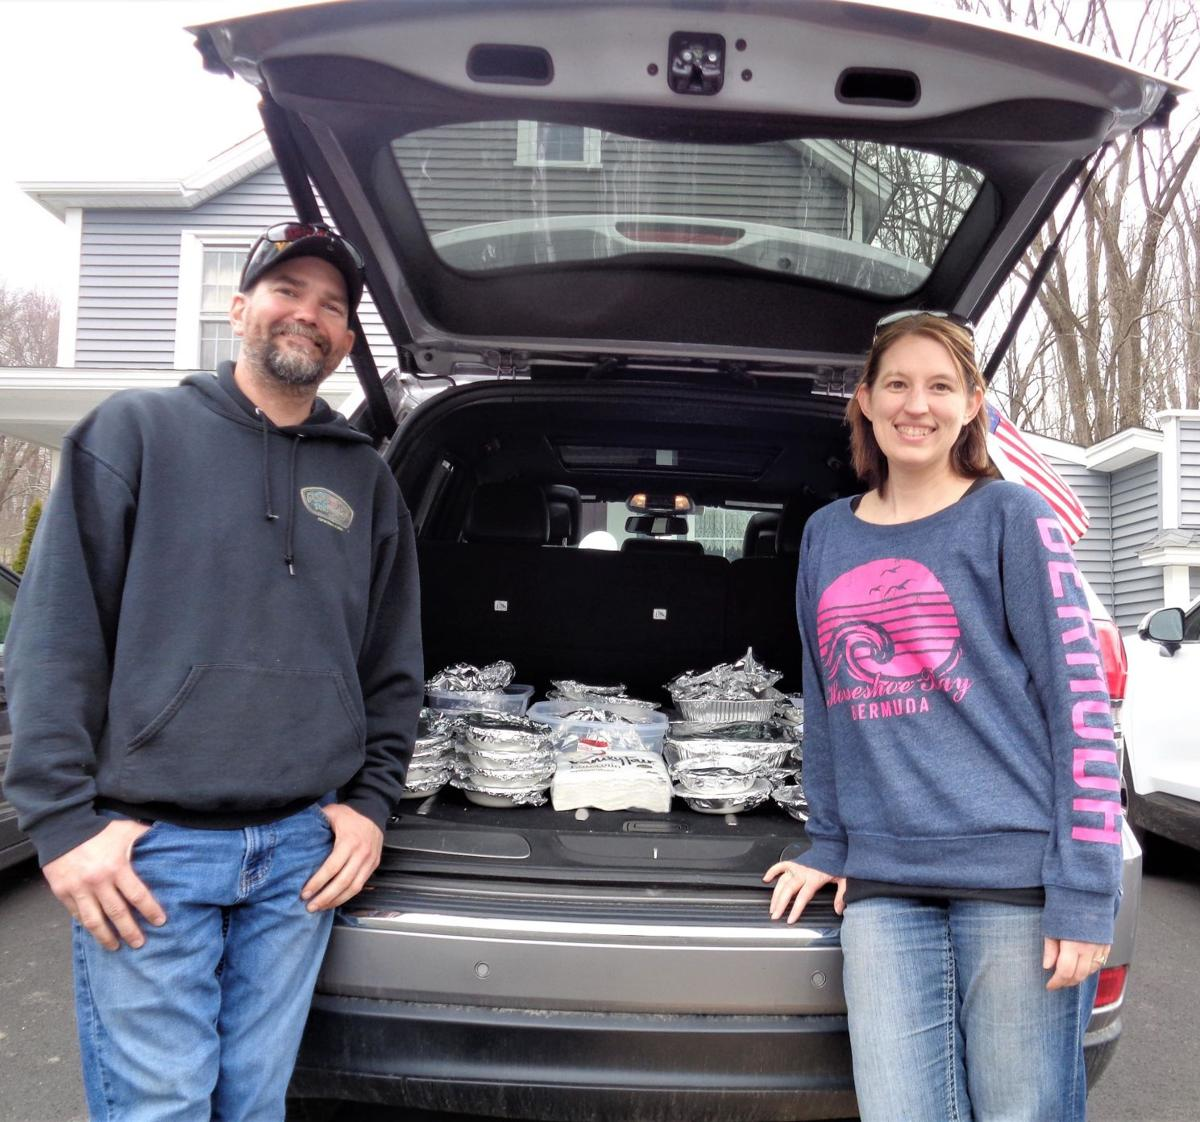 Harwinton couple brings cheer to those alone on Easter Sunday